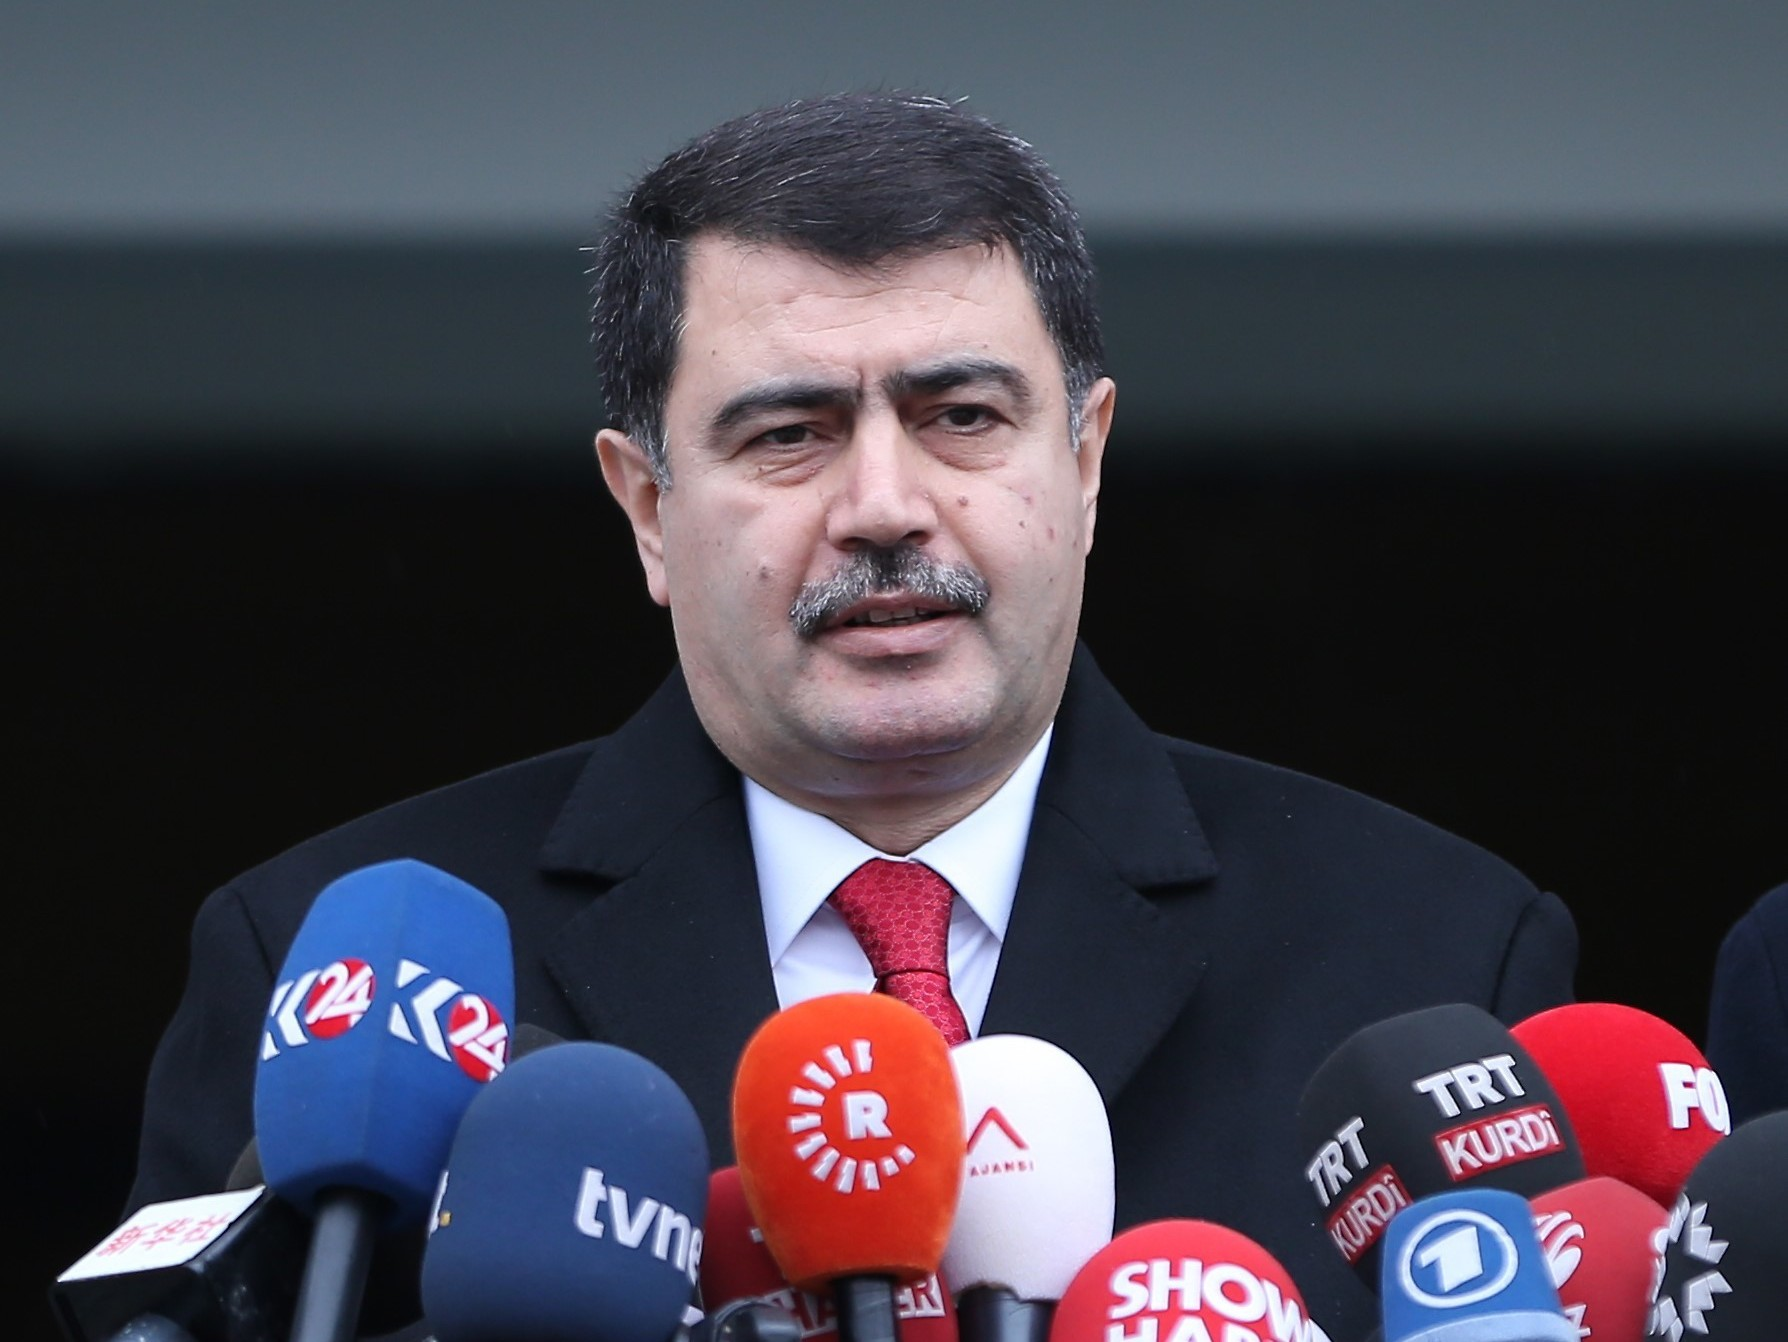 Governor of Istanbul Vasip Sahin at a press conference on the capture of Abdulgadir Masharipov, the main suspect behind the deadly attack on an Istanbul nightclub early on New Year's Day. (Anadolu Agency/Getty Images)